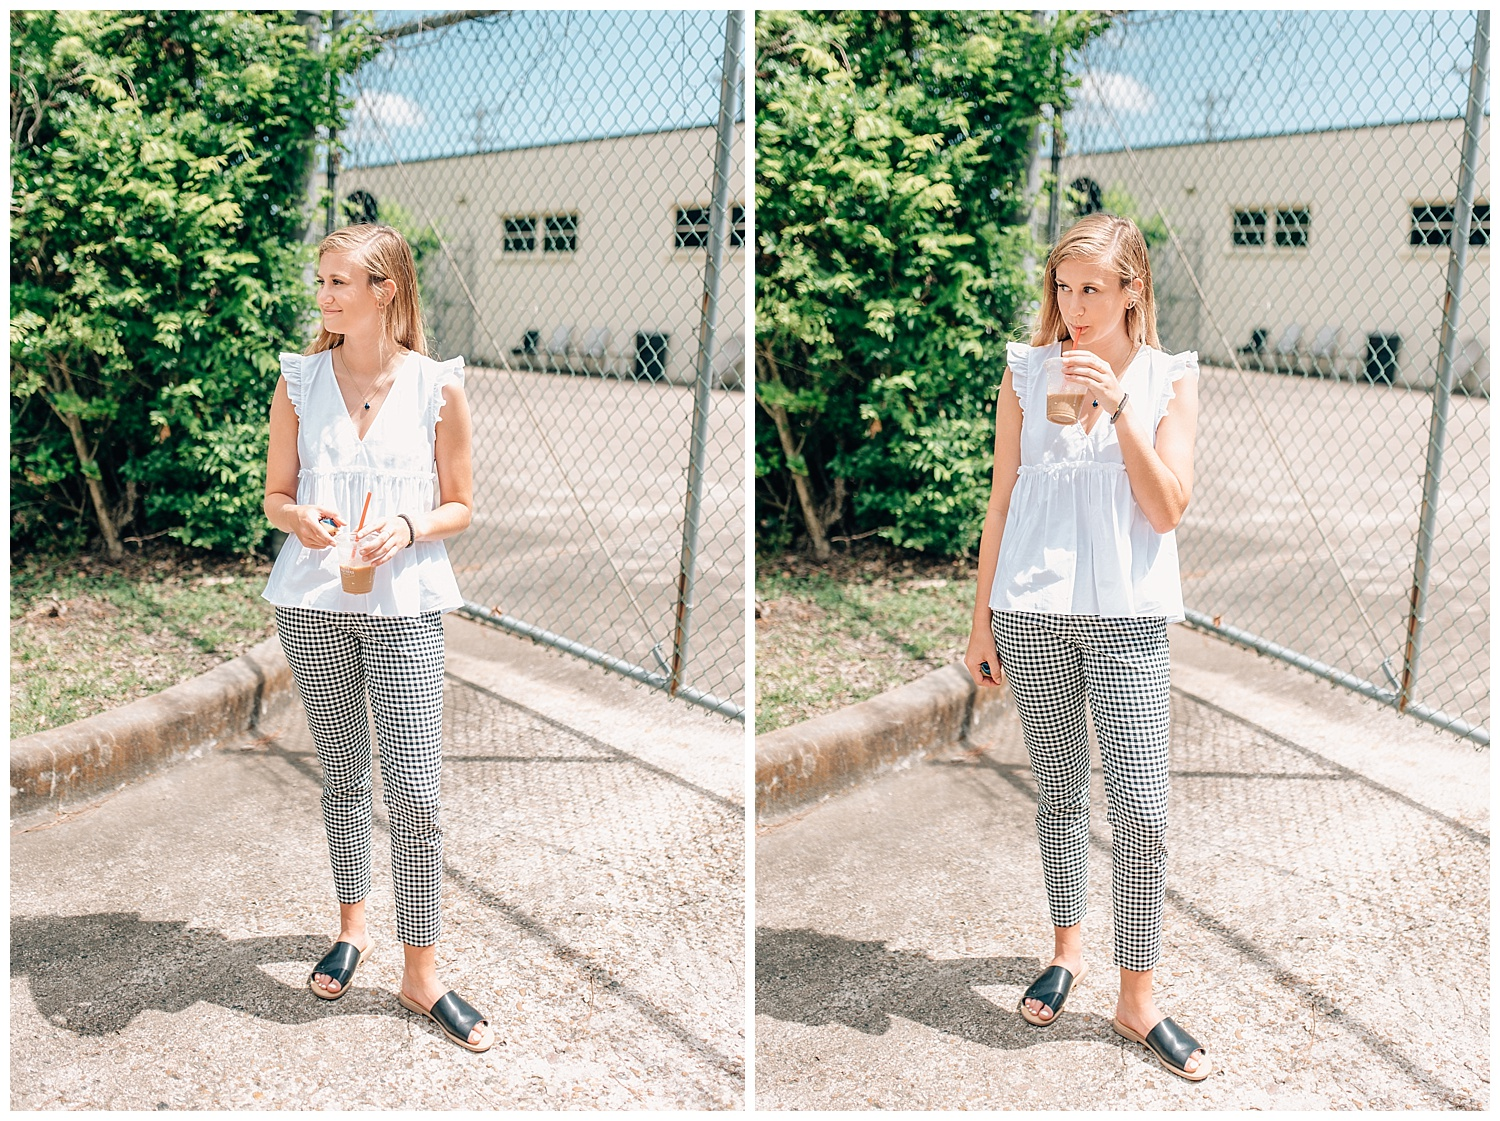 girl standing in front of chainlink fence sipping coffee